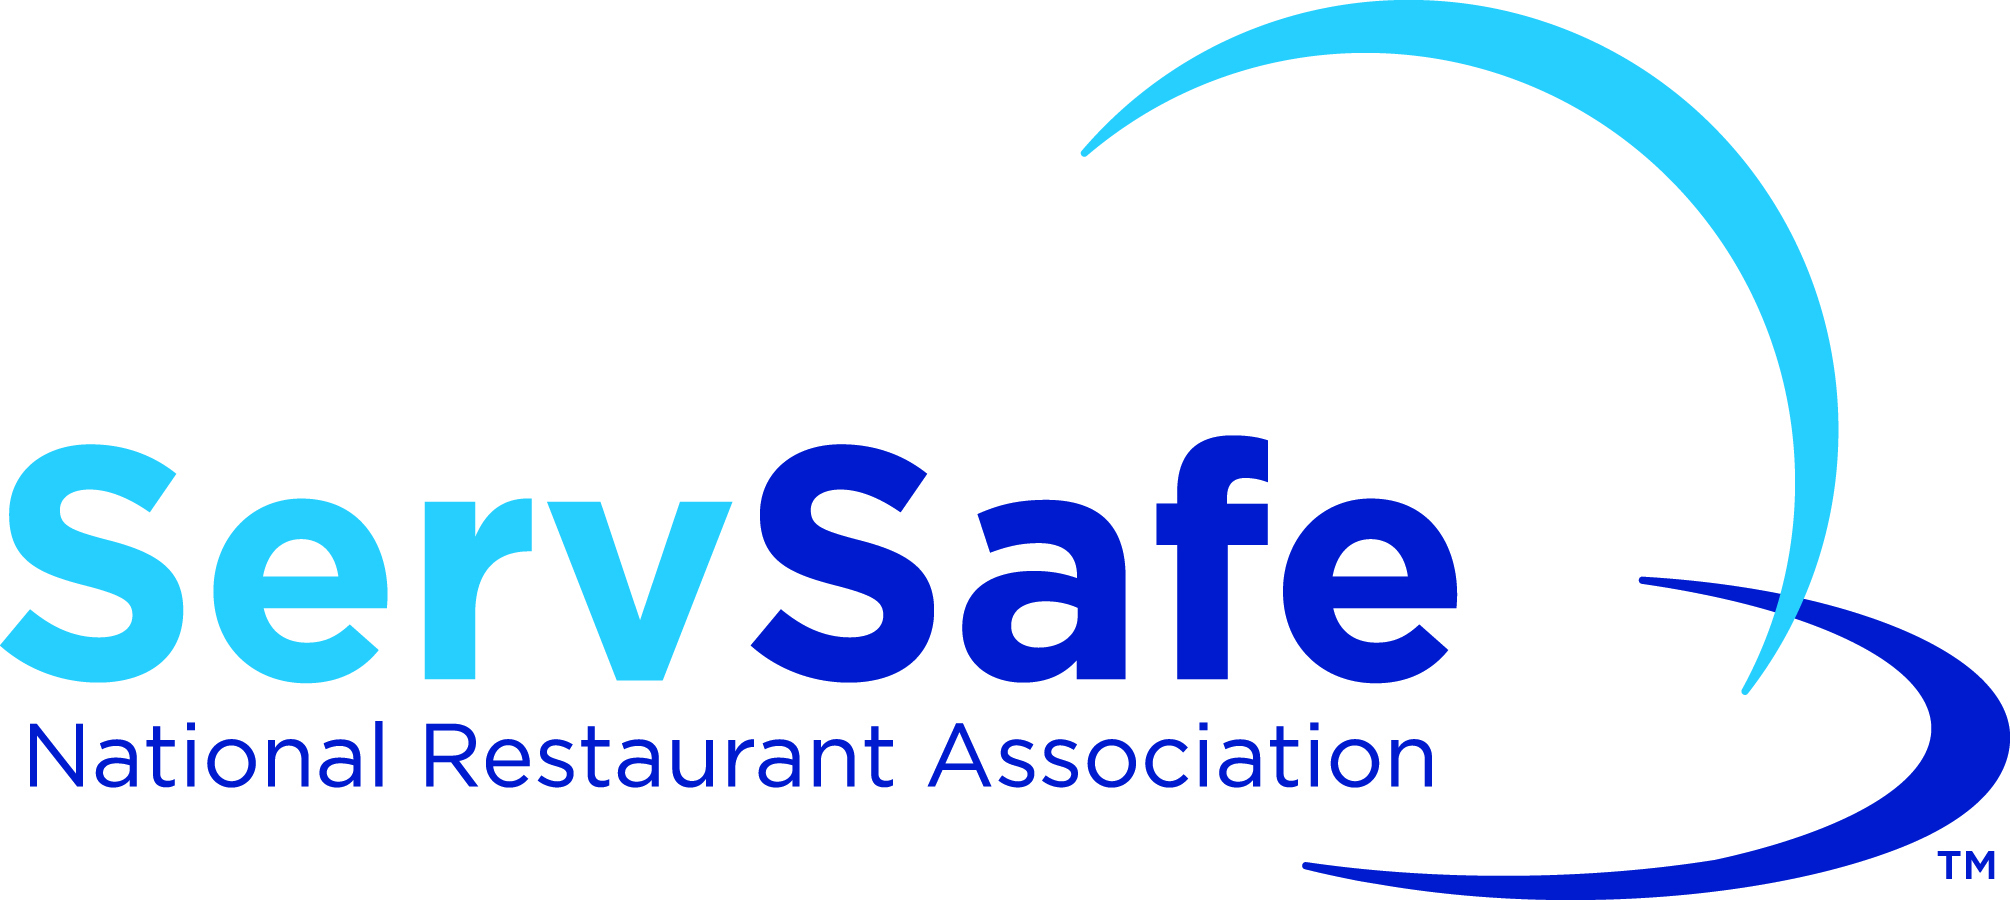 Servsafe food protection manager training this is a 2 day class servsafe food protection manager training this is a 2 day class xflitez Gallery